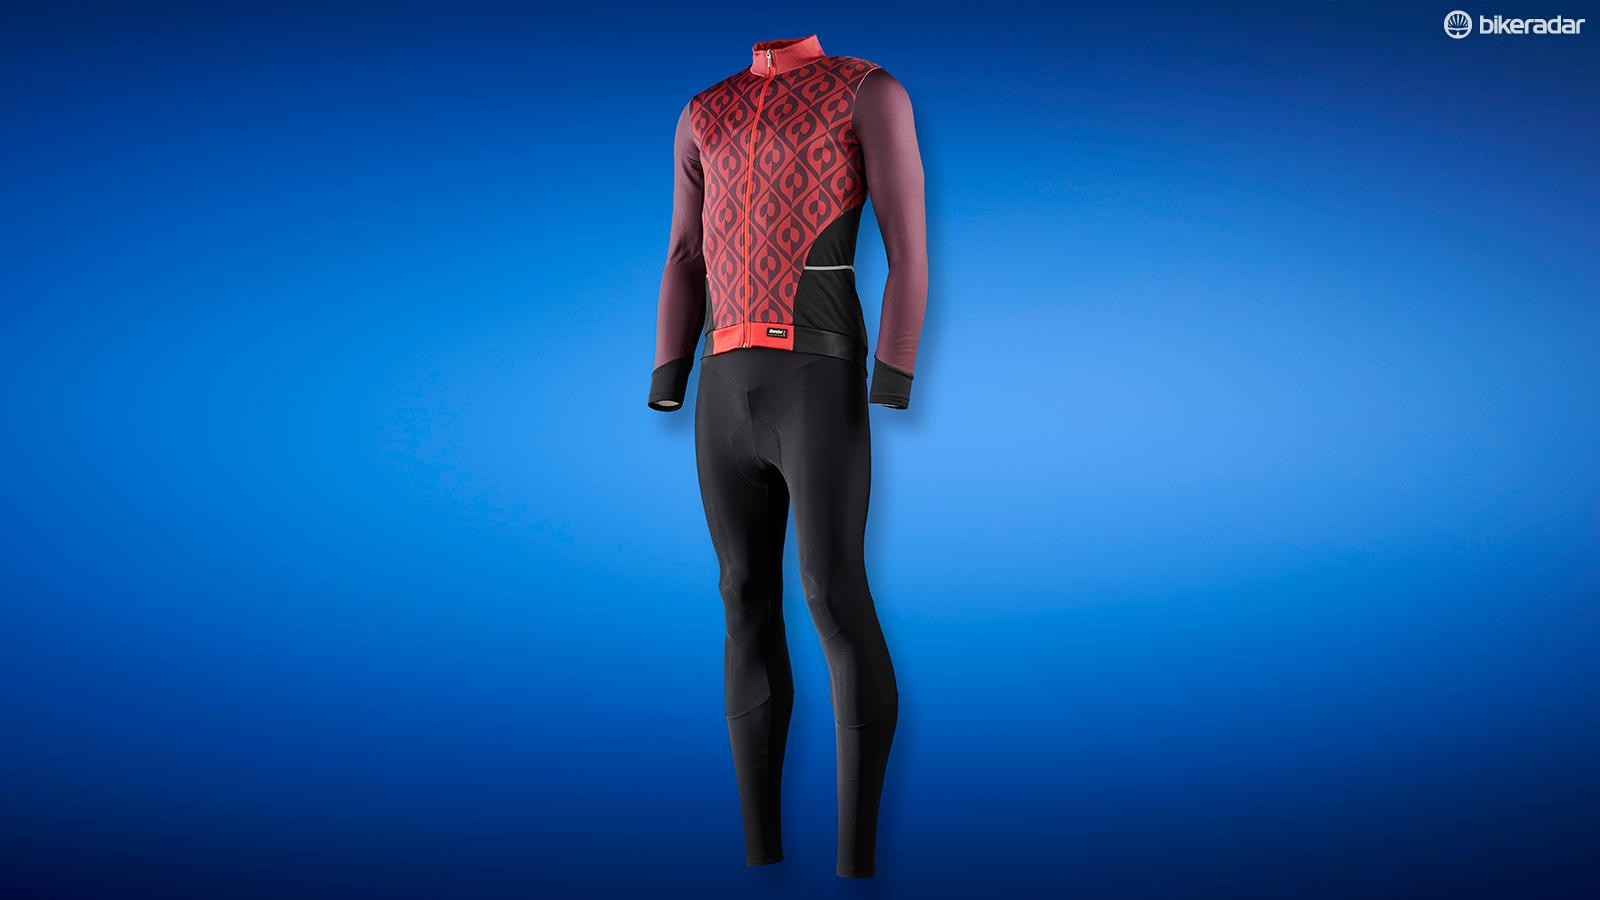 Both the jersey and bib tights are constructed from fleece-backed Lycra